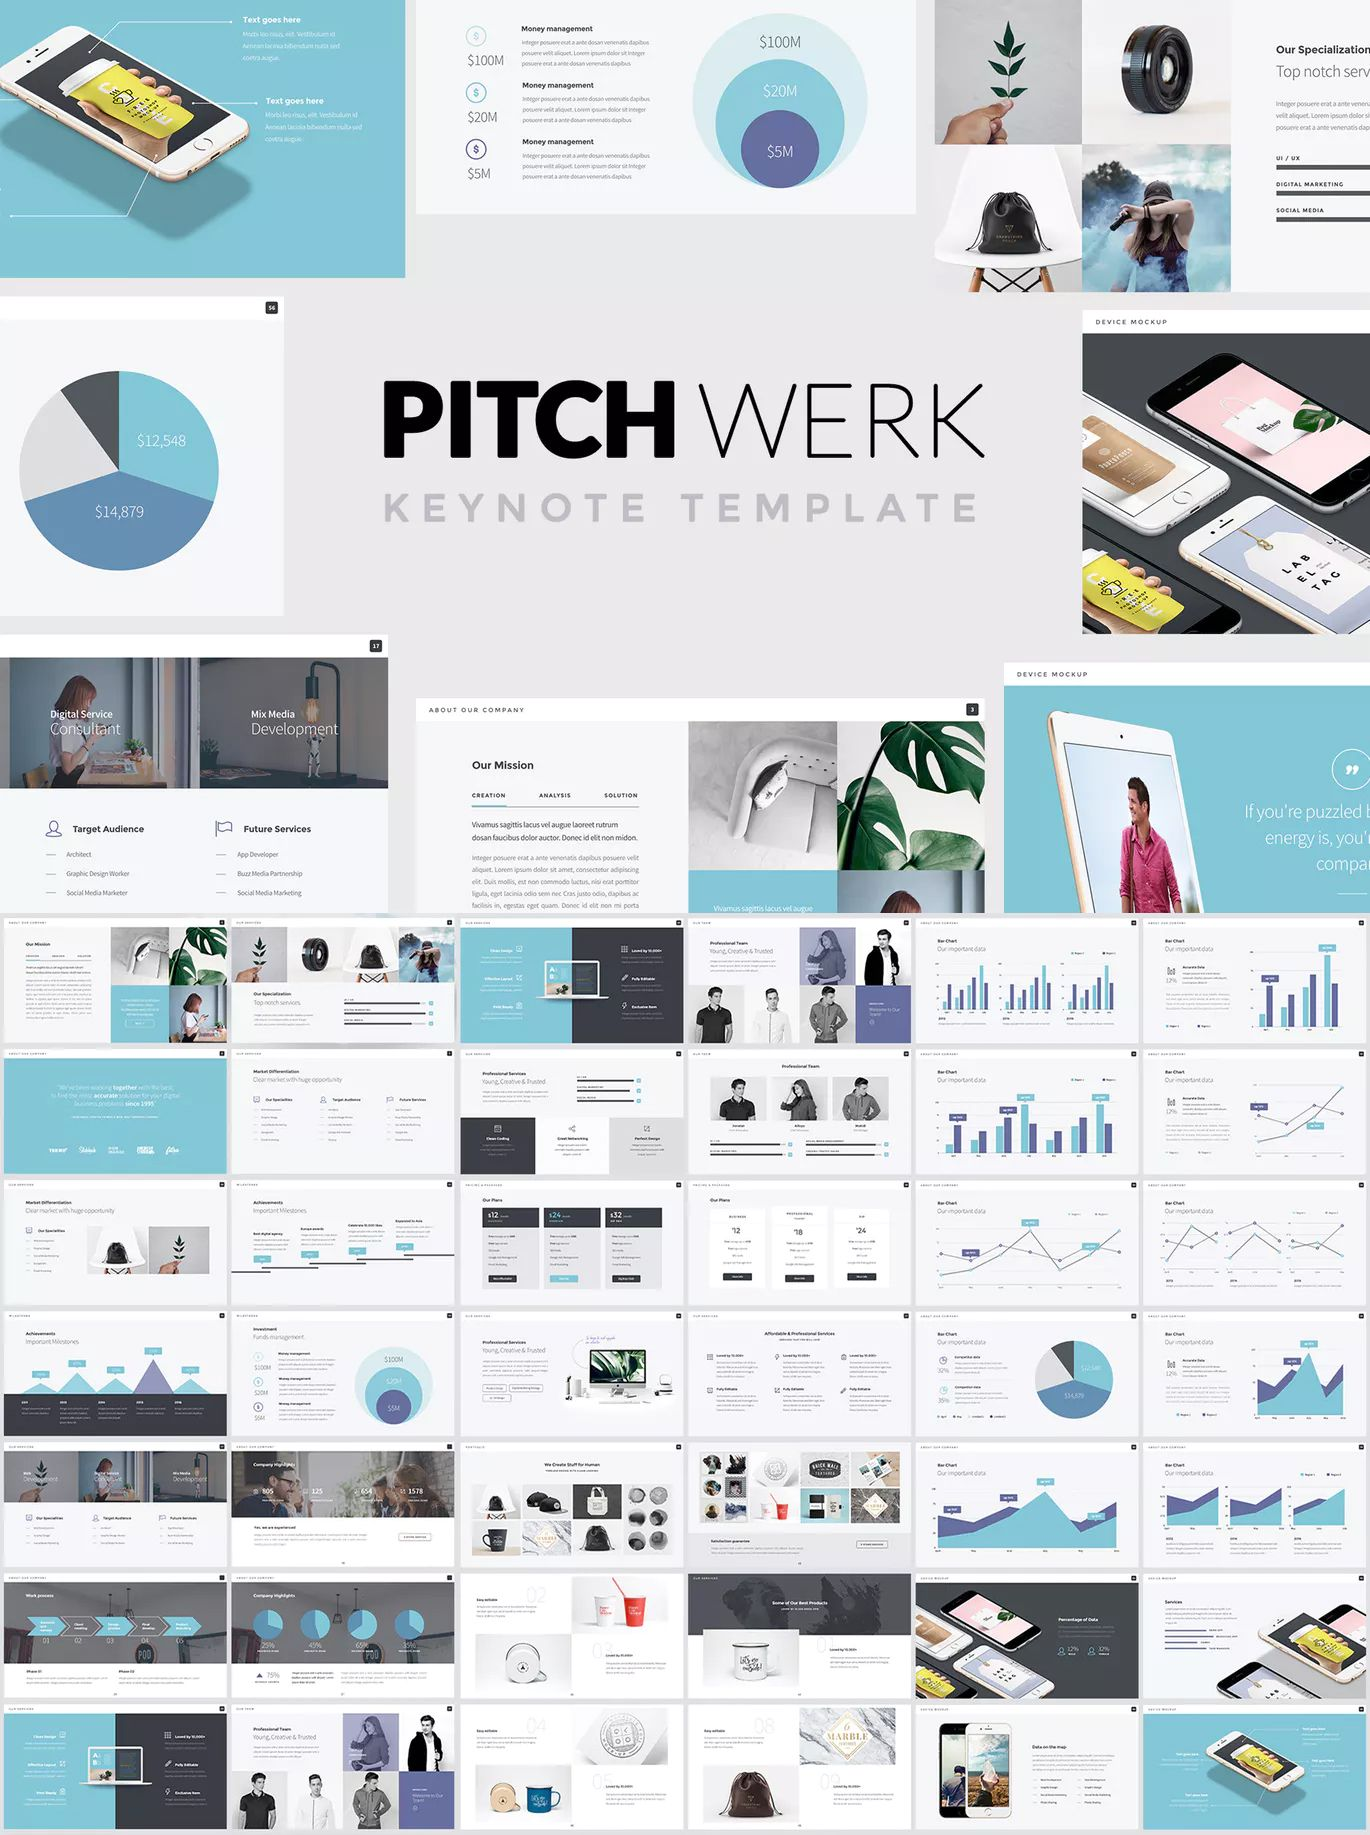 Pitch Werk  Elegant Keynote Pitch Deck Presentation Template